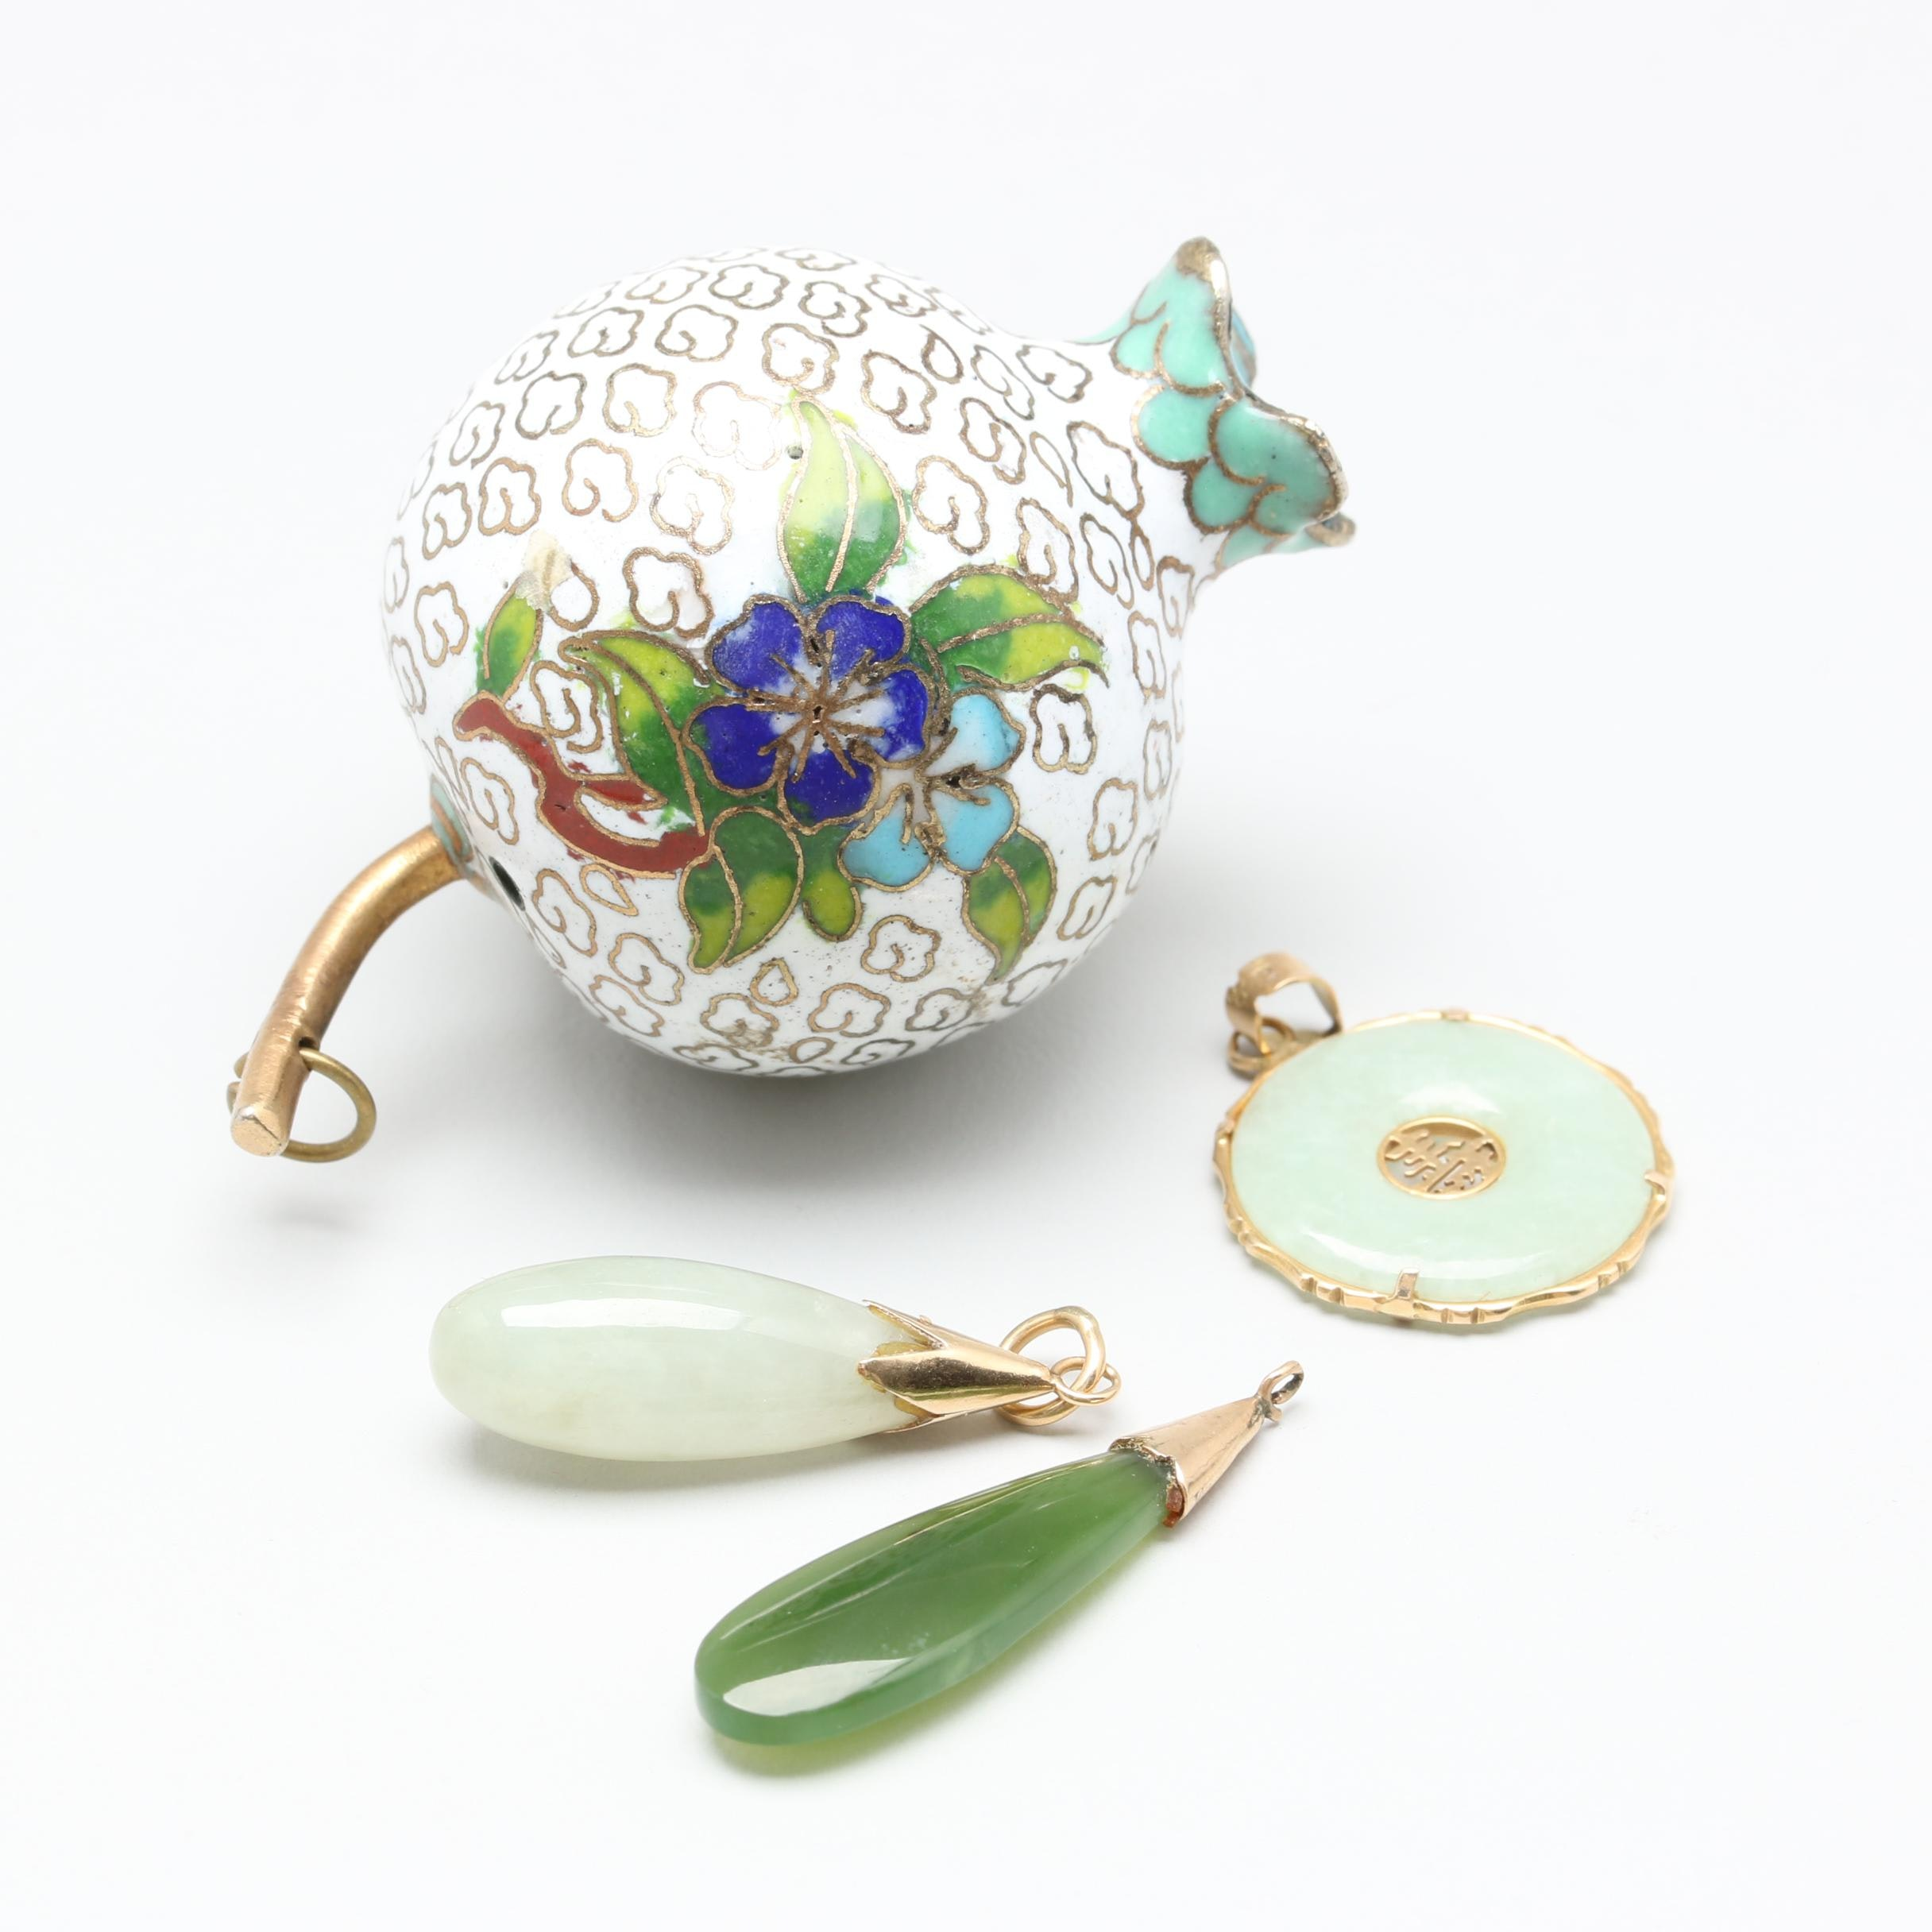 10K and 14K Yellow Gold and Gold Toned Nephrite, Jadeite and Enamel Pendants